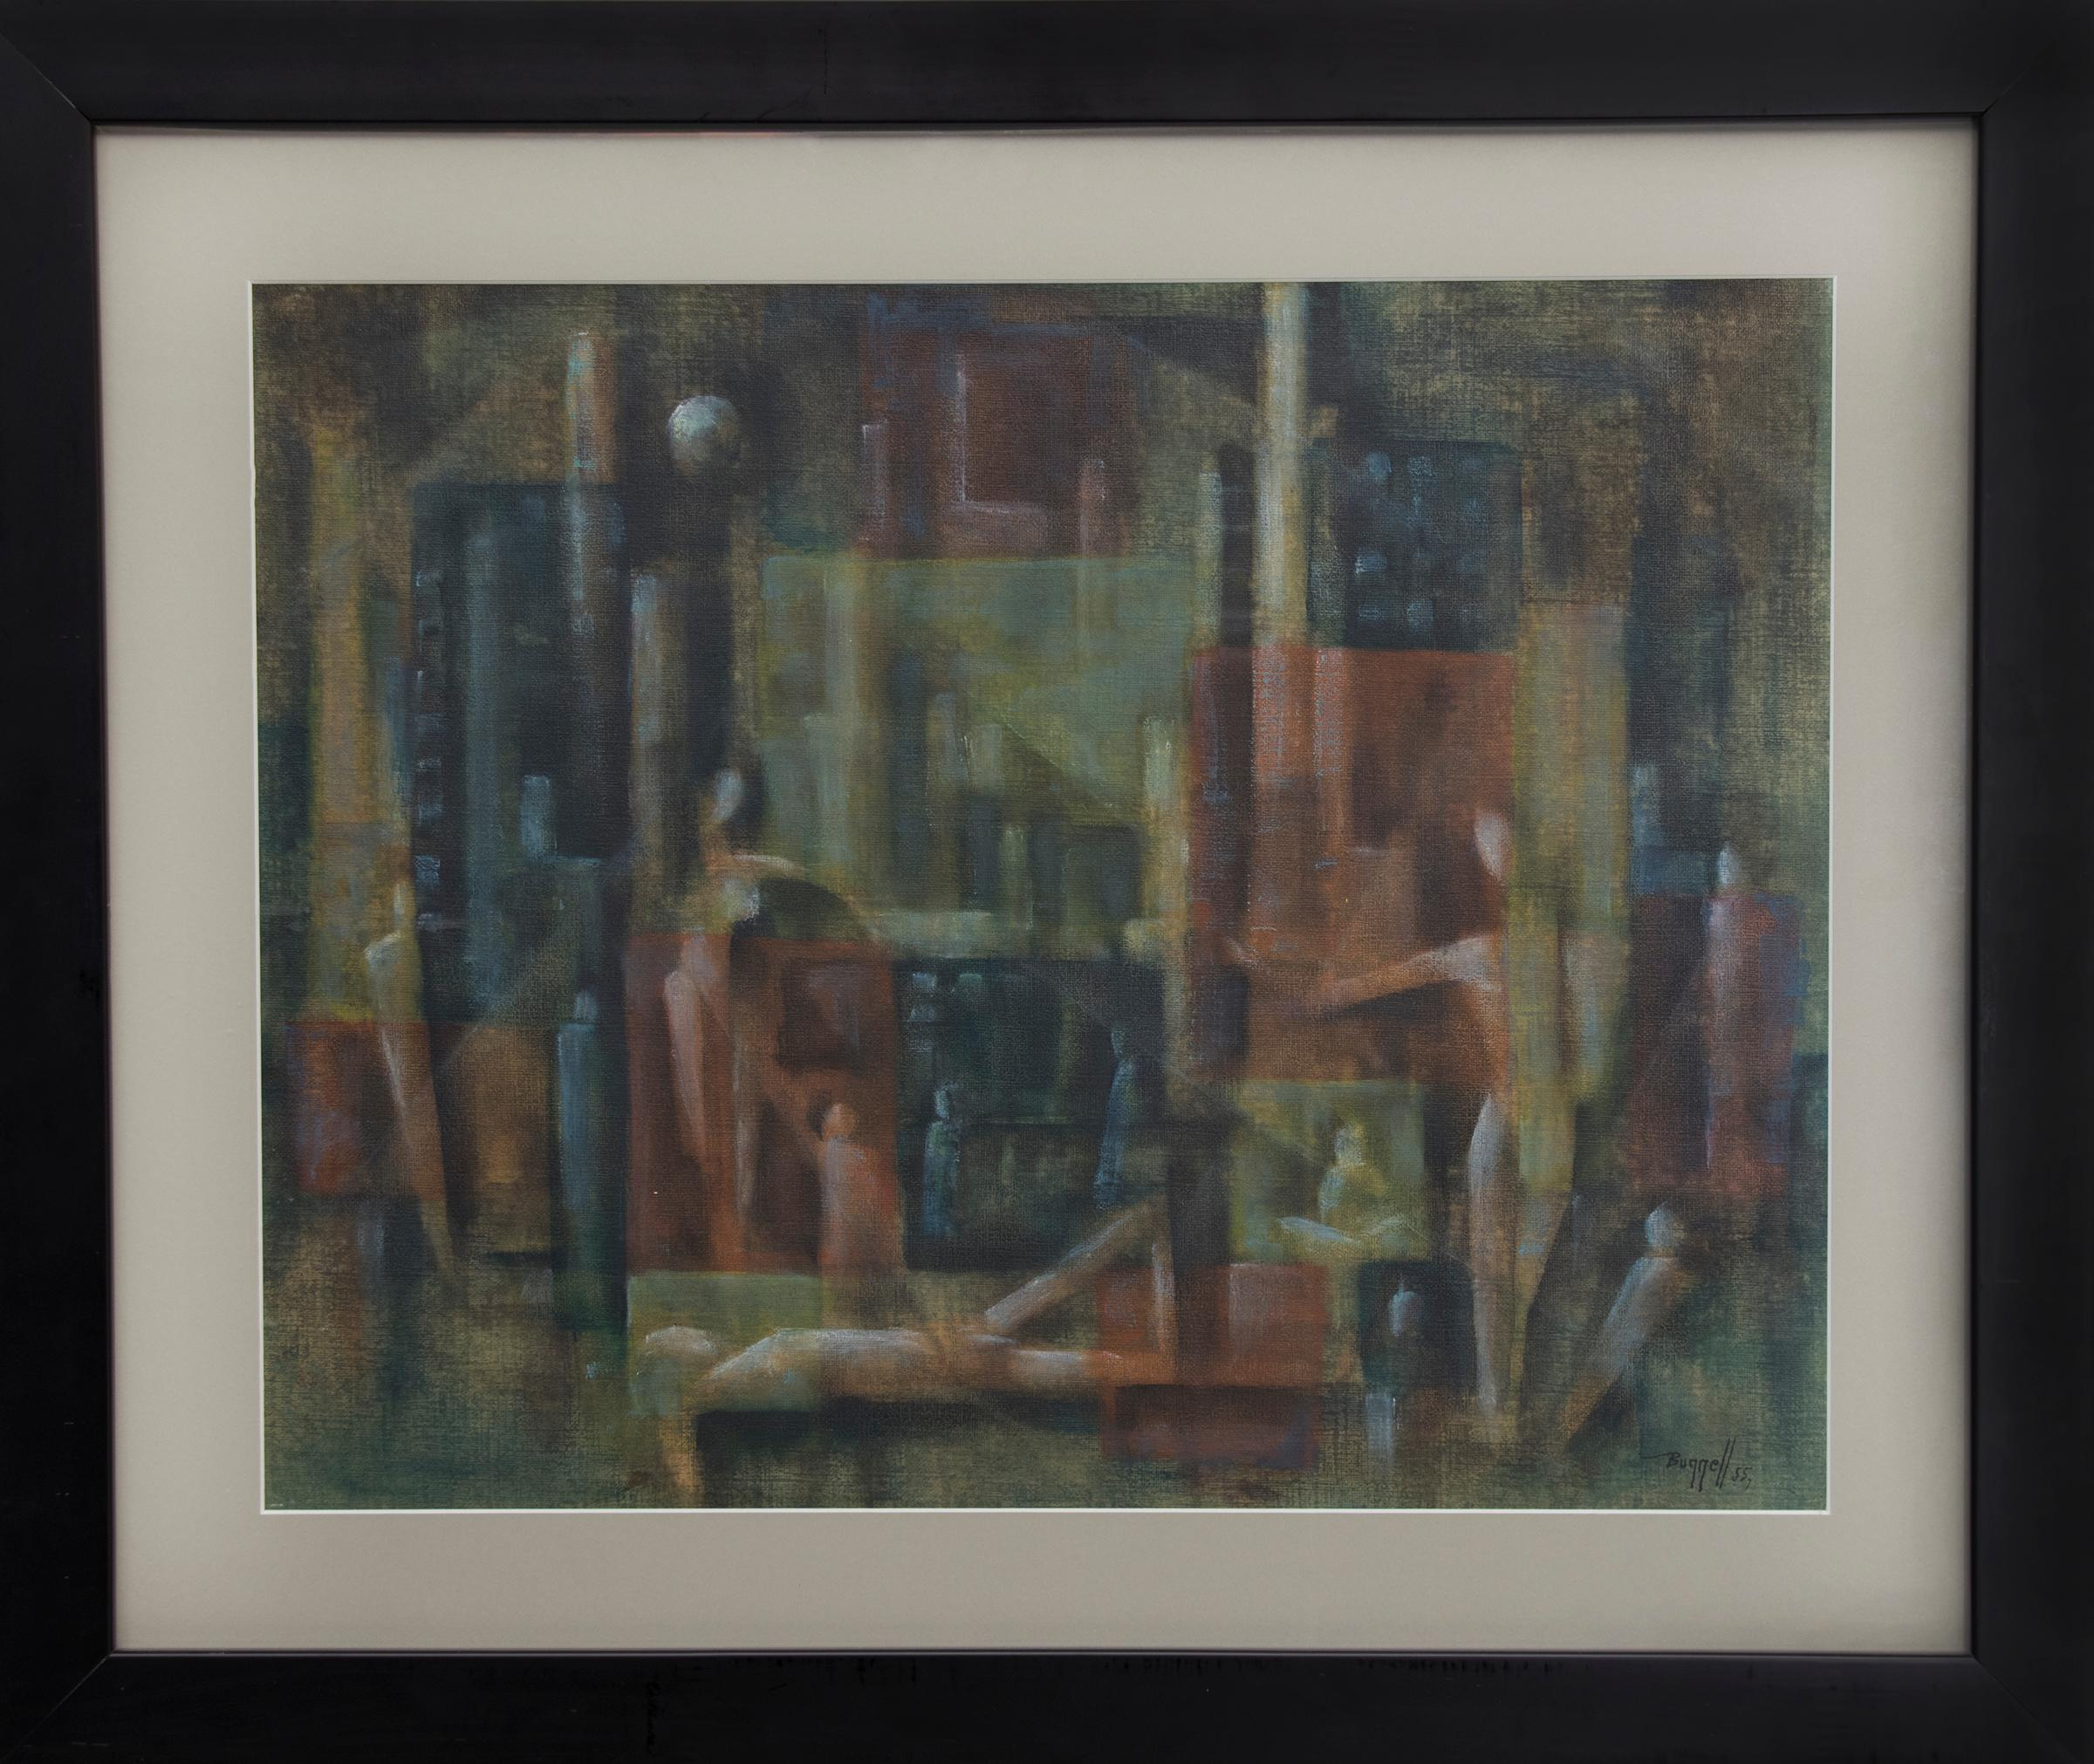 Abstract Painting with Surrealist Figures, Red-Orange, Brown, Blue, Yellow-Green